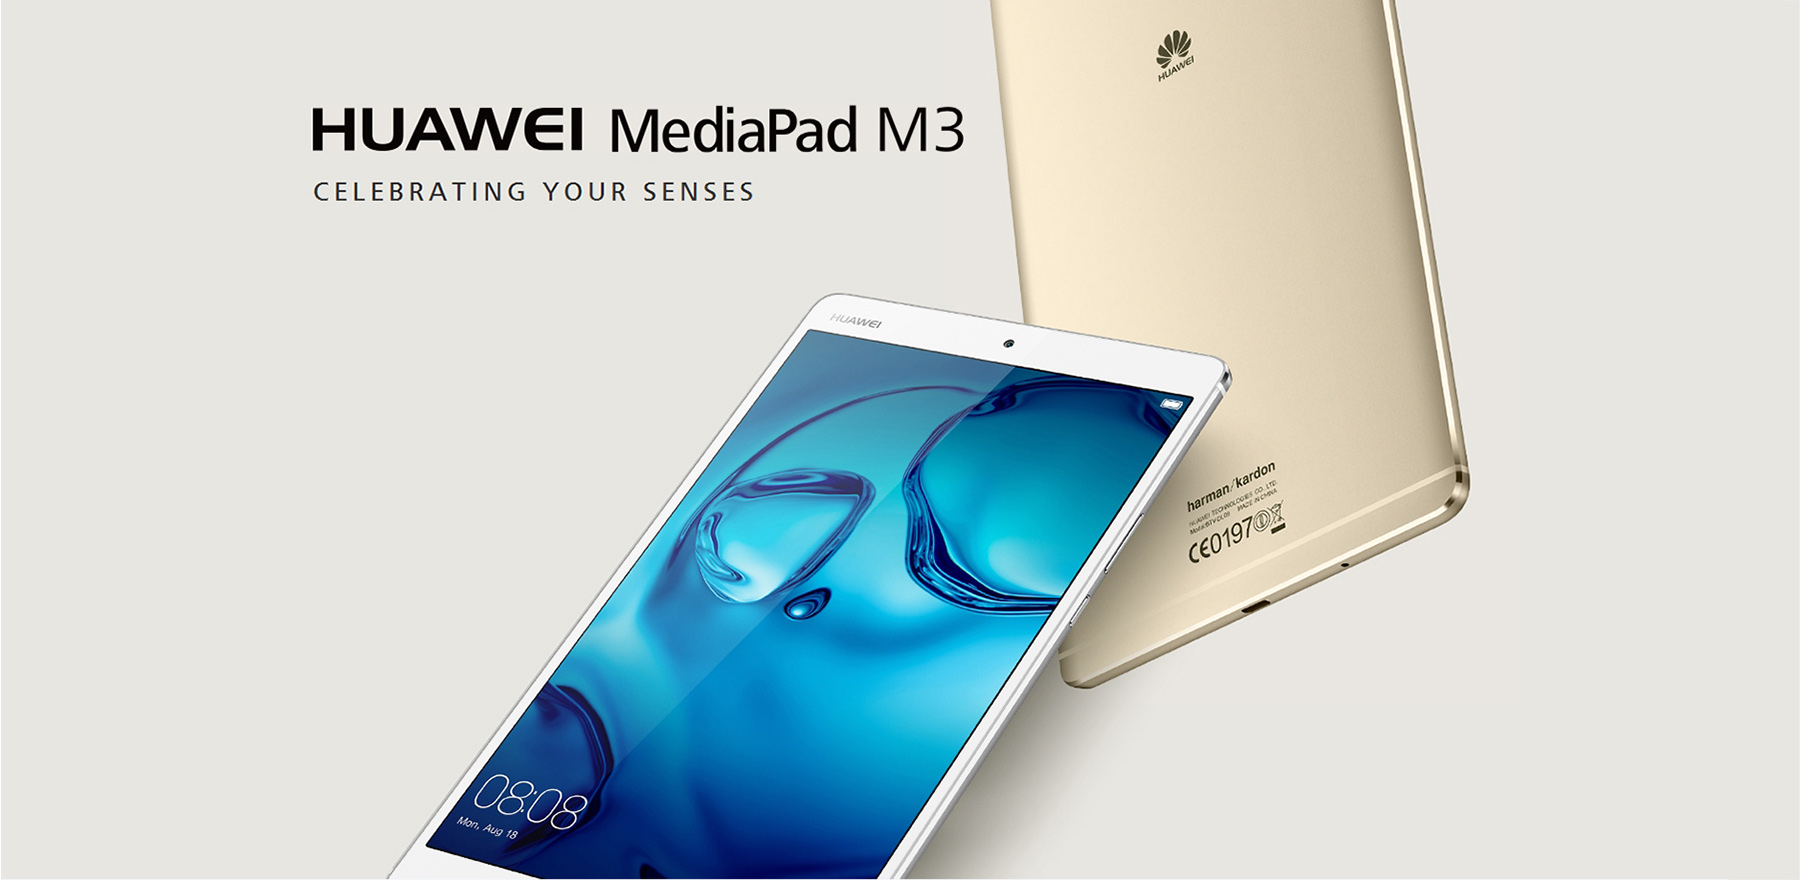 Huawei MediaPad M3 8.4 inch Tablet PC Android 6.0 Kirin 950 Octa Core 1.8GHz 4GB RAM 32GB ROM Fingerprint Scanner Ultra 2K Crystal-clear Display 8.0MP Cameras Dual Speakers GPS